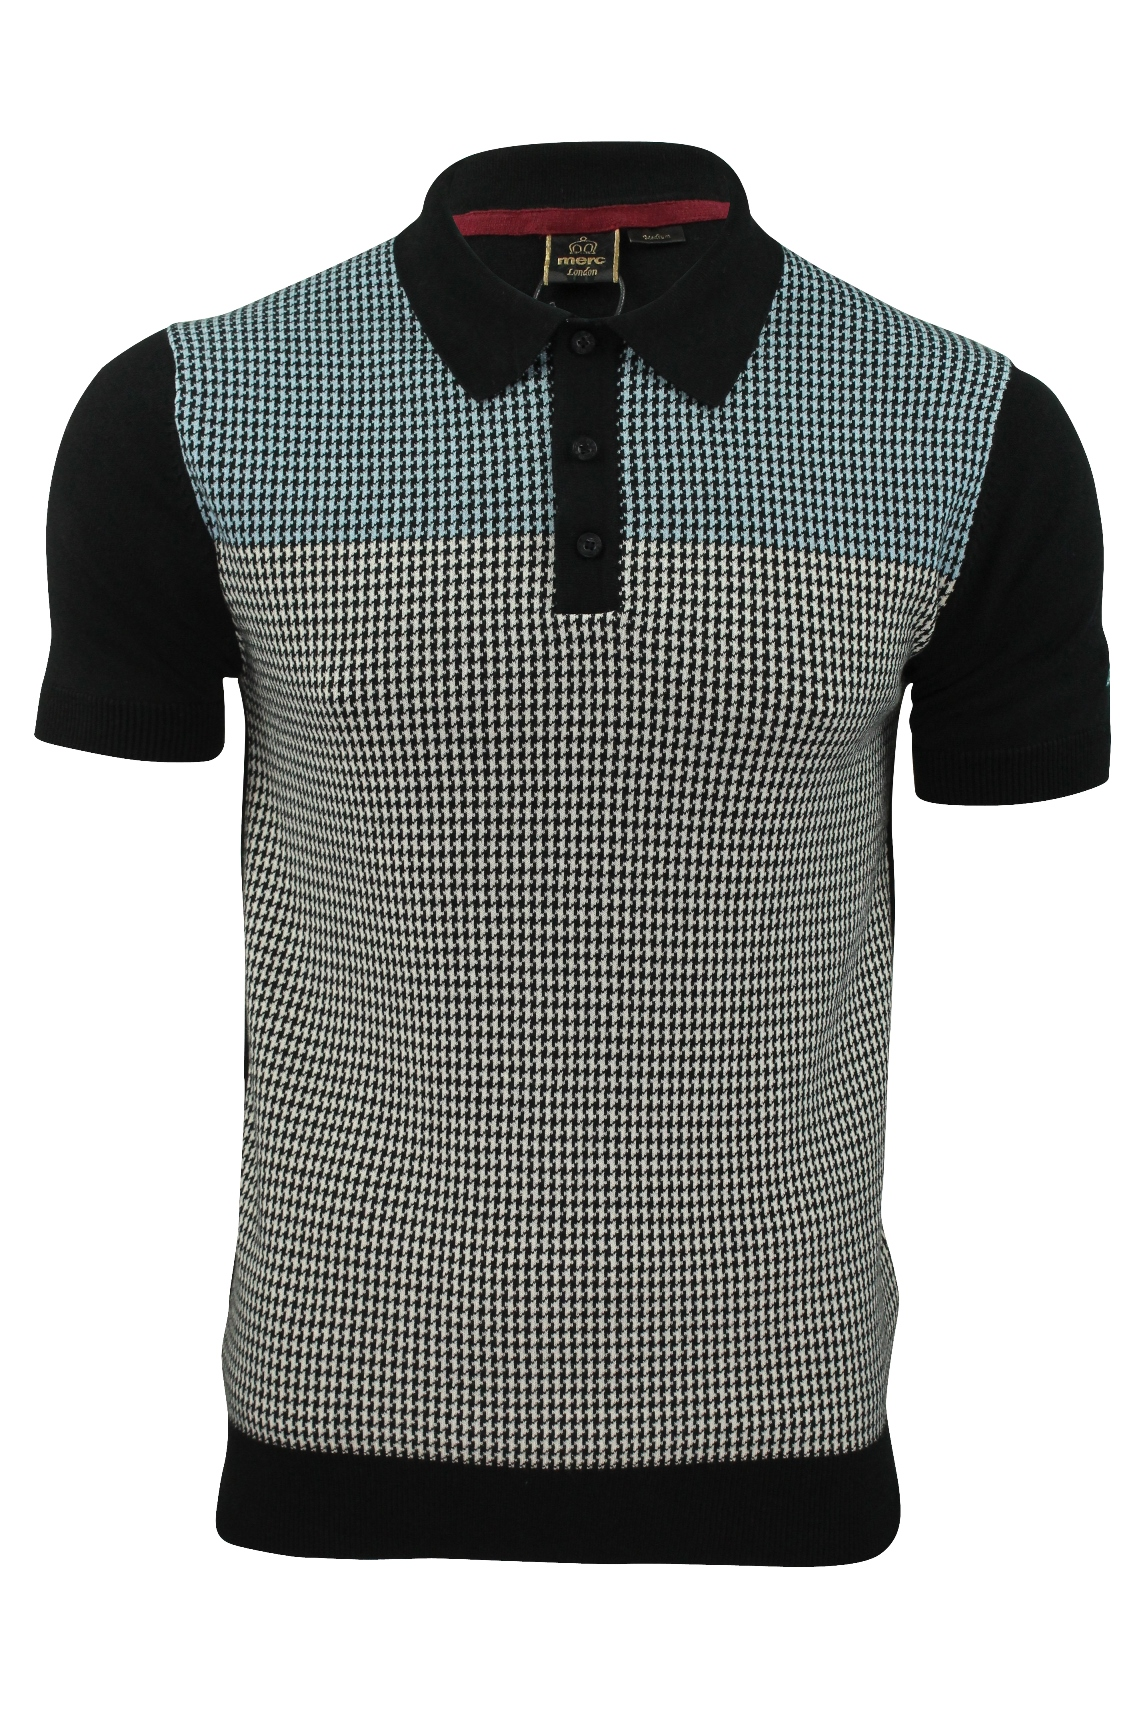 Mens knit polo shirt by merc 39 parish 39 dog tooth check ebay for Knitted polo shirt mens